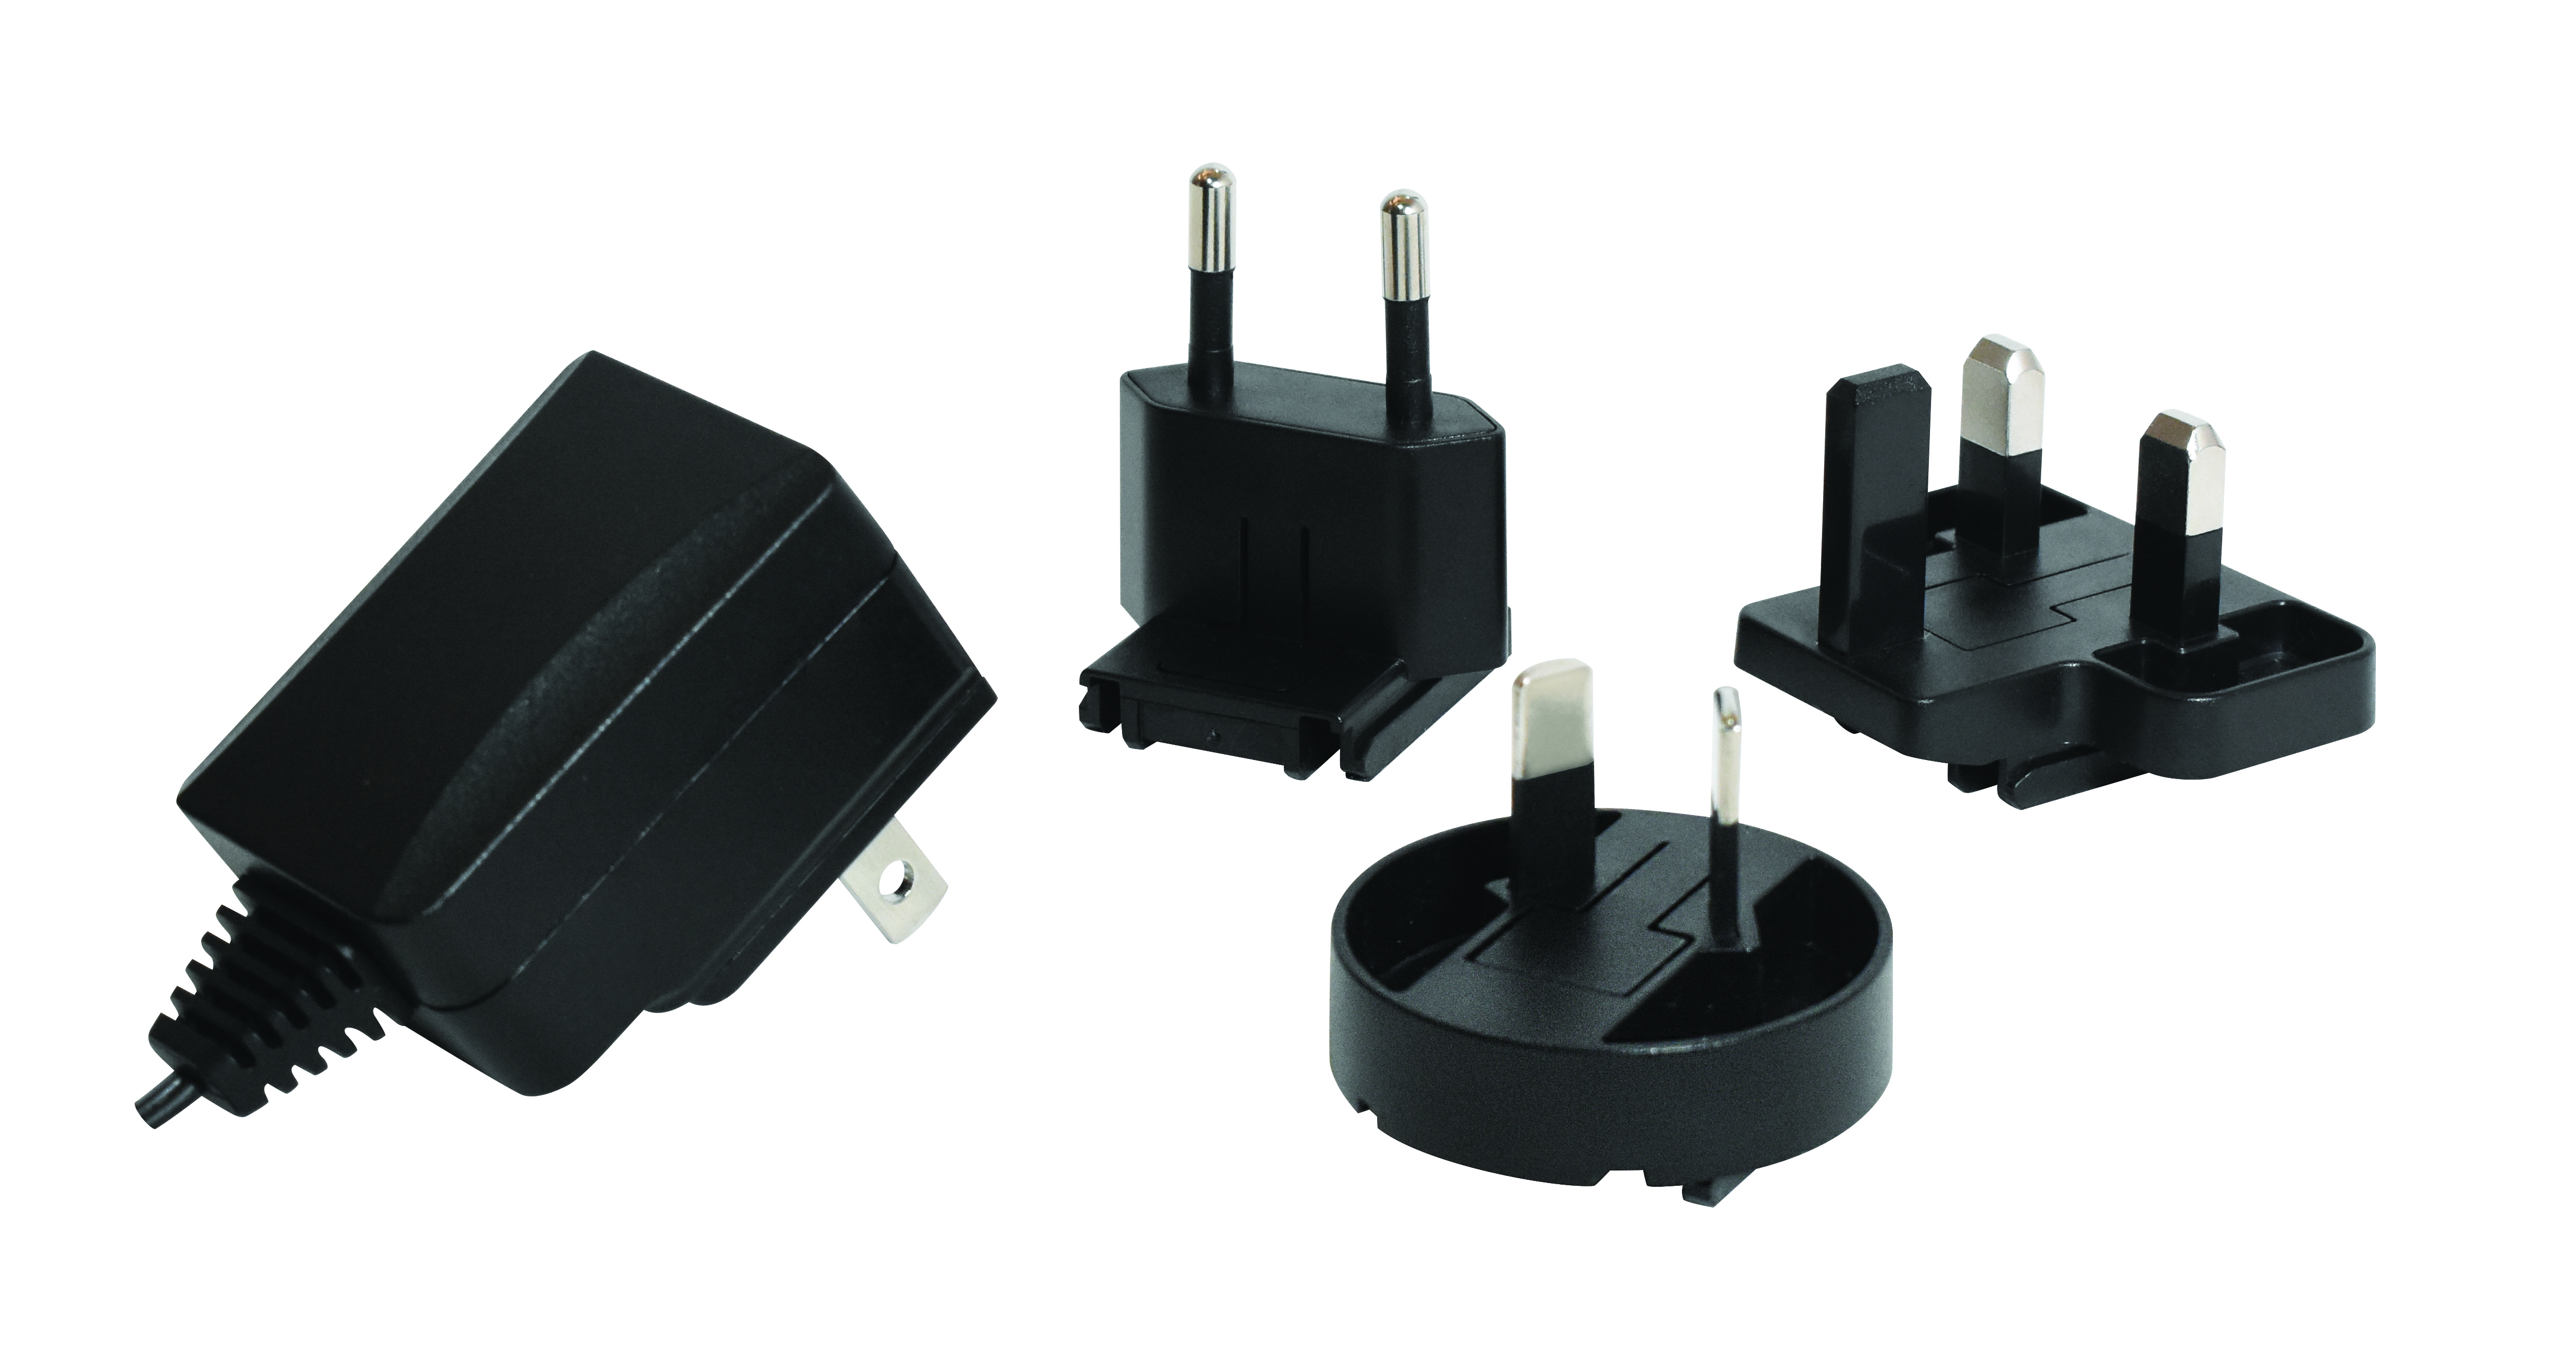 6 W Multi-Blade Power Adapter Boasts Ultra-Compact Package